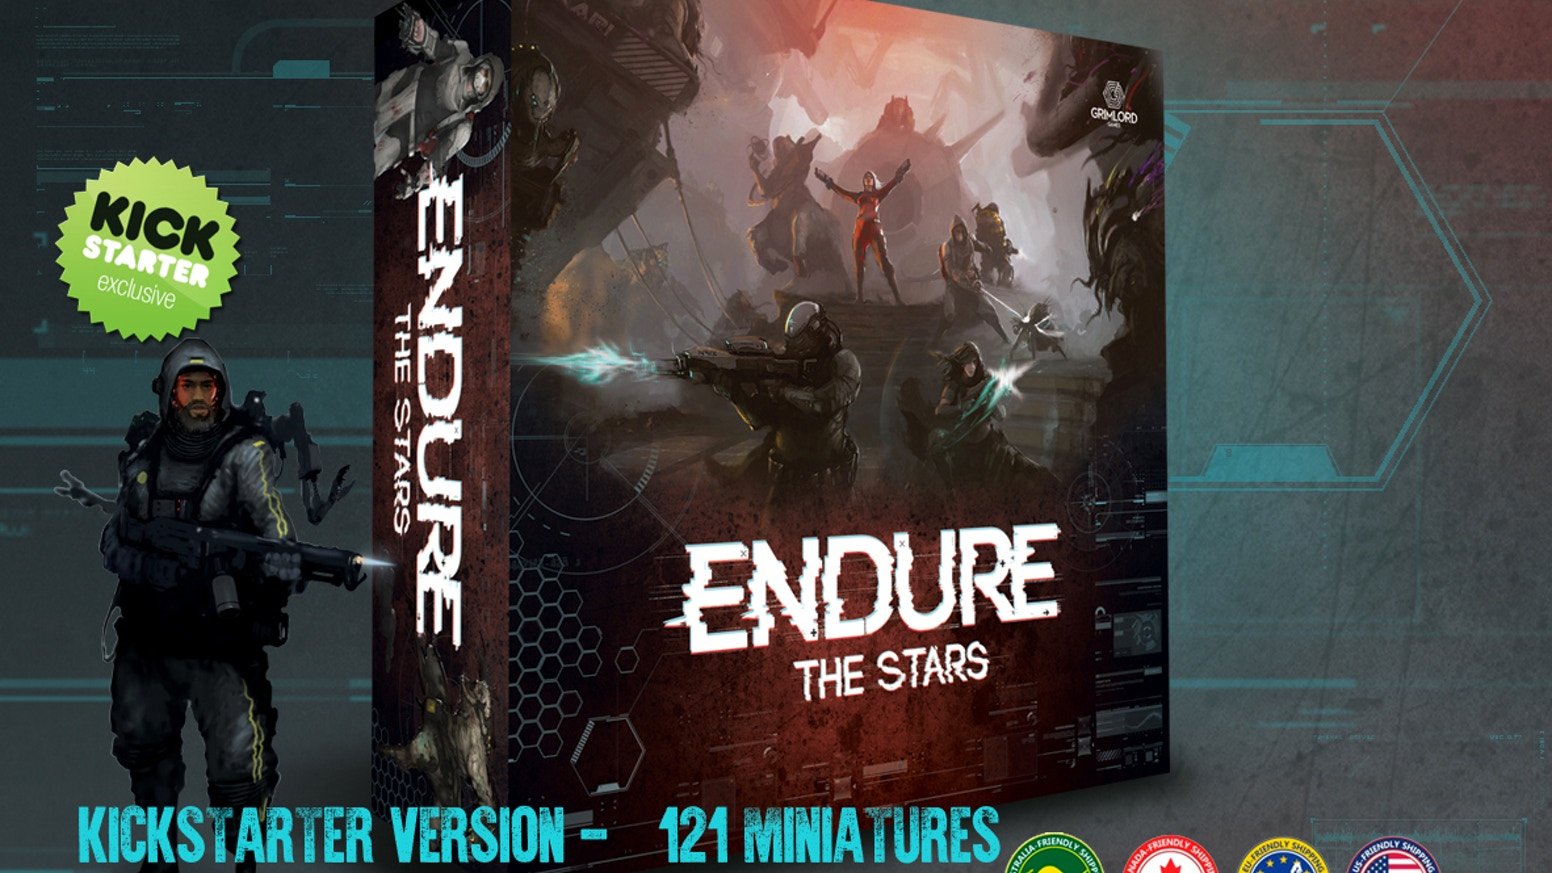 An epic 1-6 player Sci-Fi co-op fight for survival, set amongst the ruins of the N.W.E. Hikari spaceship, now with 121 miniatures.